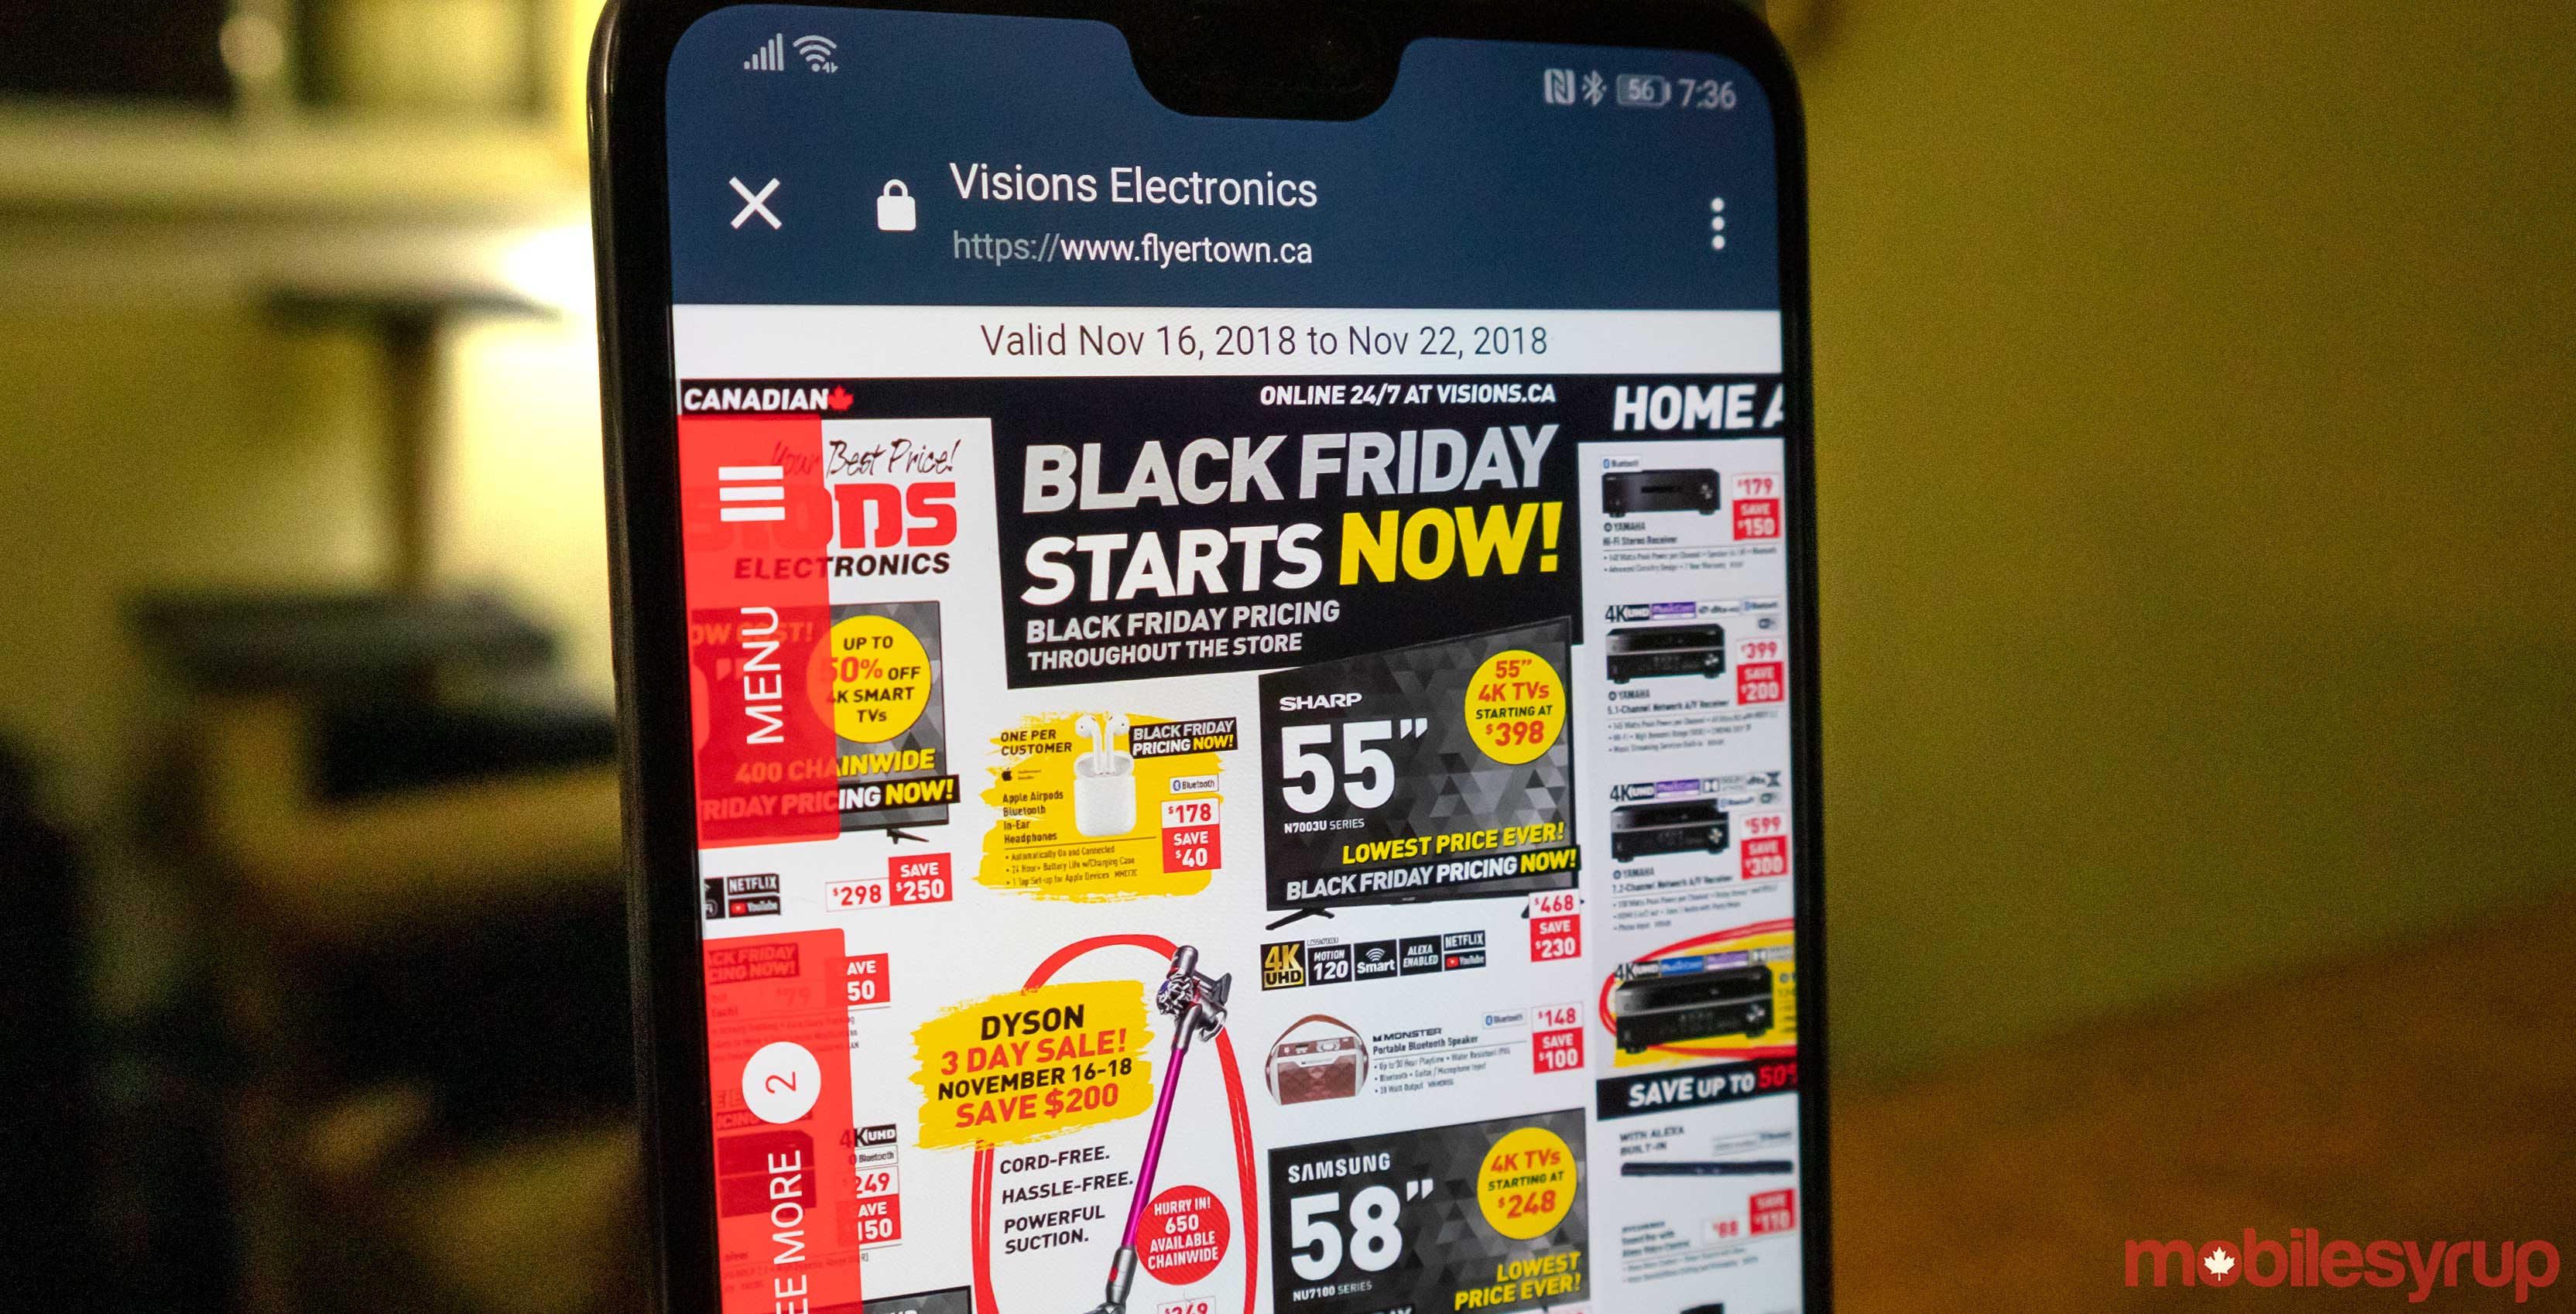 50bf538e31d Visions is offering a variety deals on tech products this Black Friday